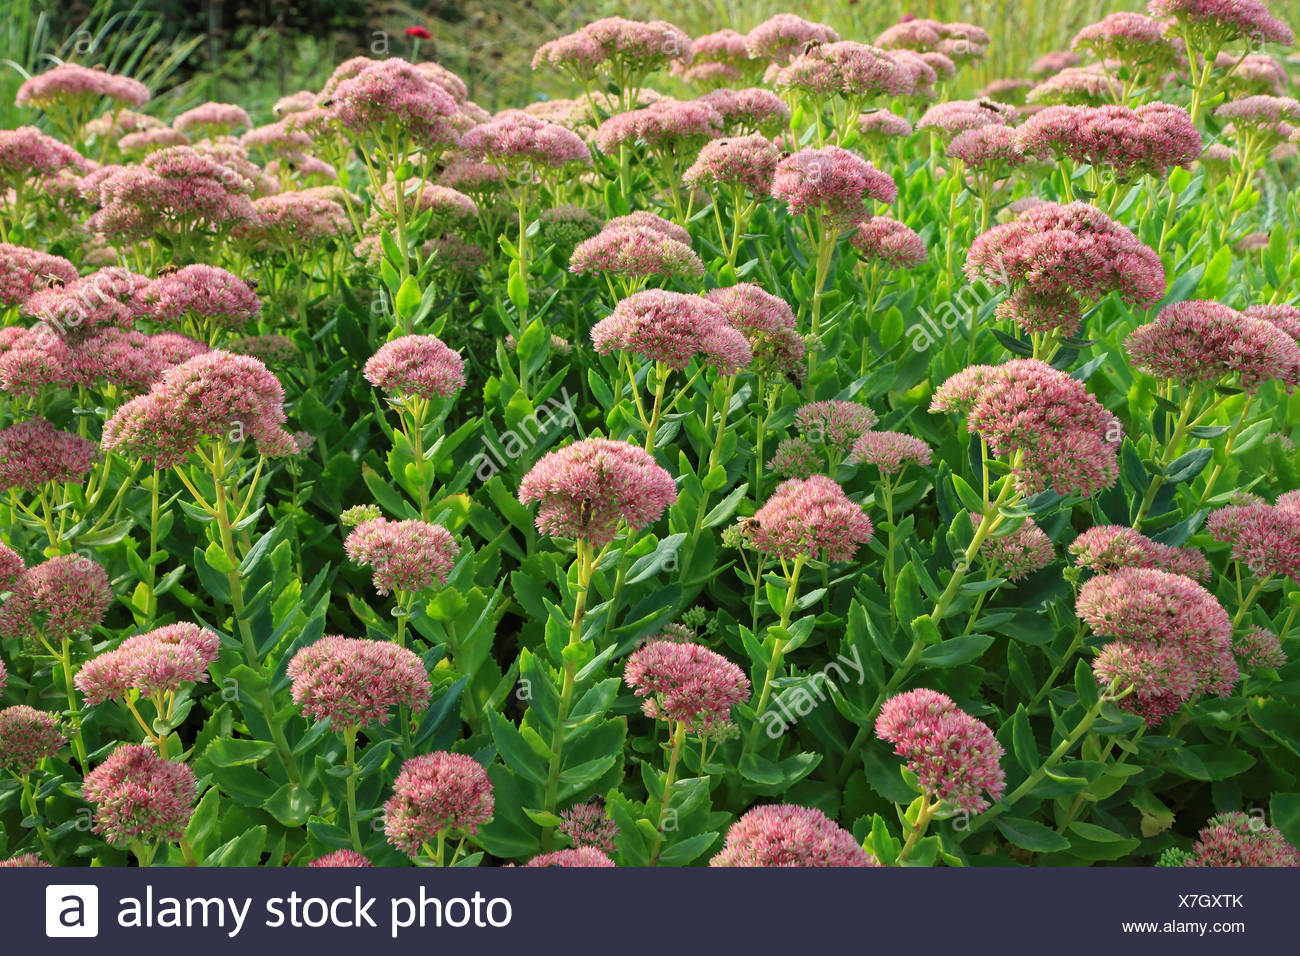 Orpine stonecrop, Garden stonecrop, Live-forever stonecrop (Sedum telephium, Hylotelephium telephium), blooming in a garden - Stock Image